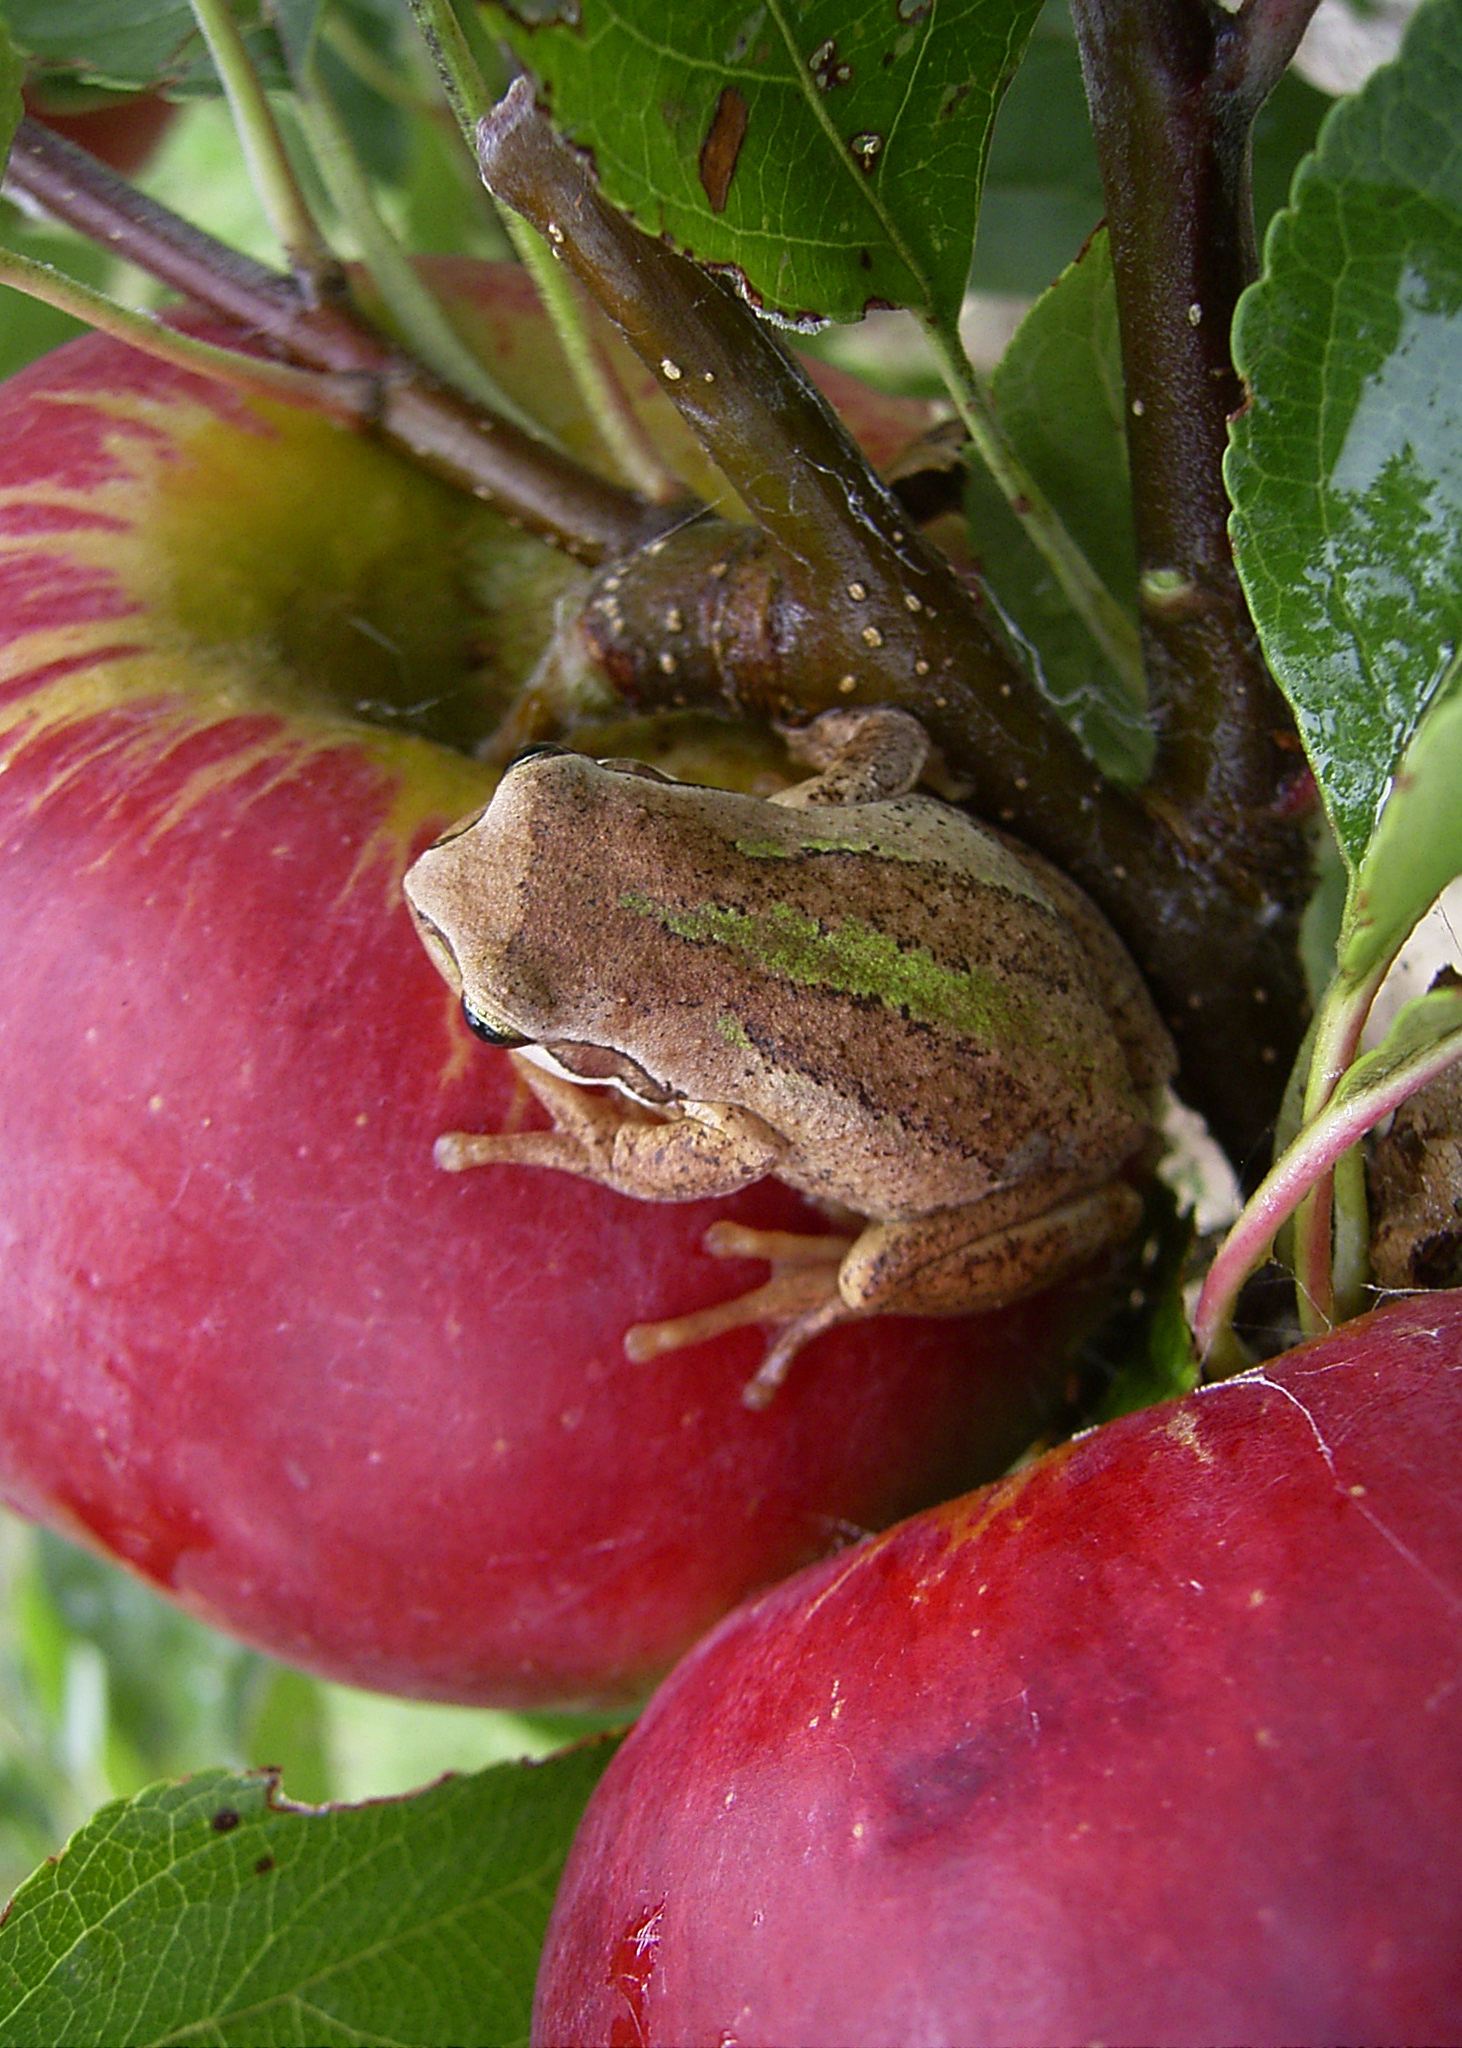 Brown tree frog on Prima apple